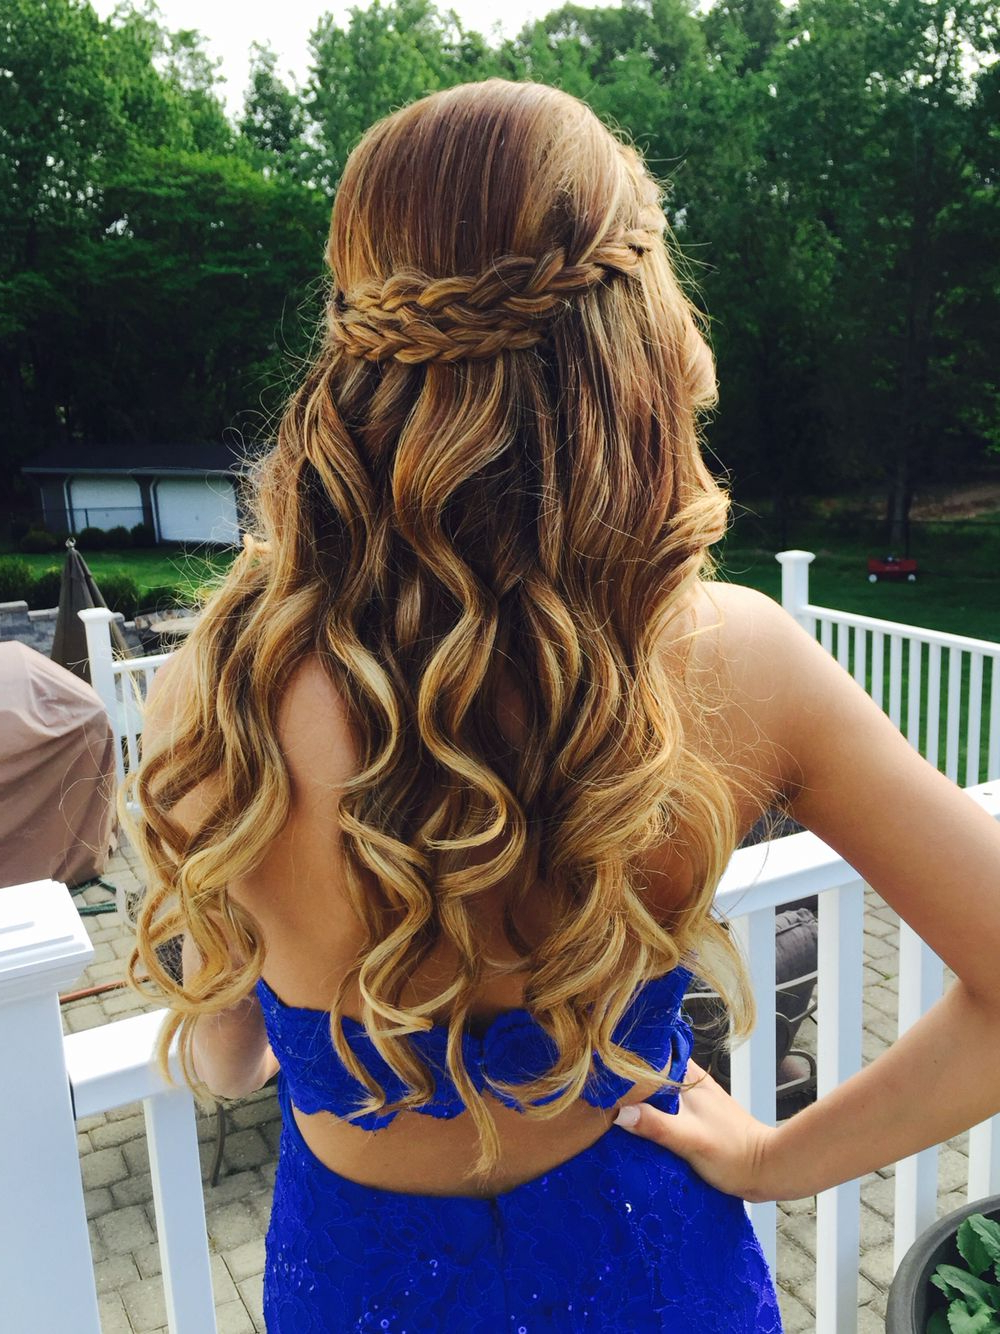 Women Hairstyle : Hairstyles For Formal Events Pretty Short Hair Throughout Most Current Medium Hairstyles For Formal Event (View 3 of 20)